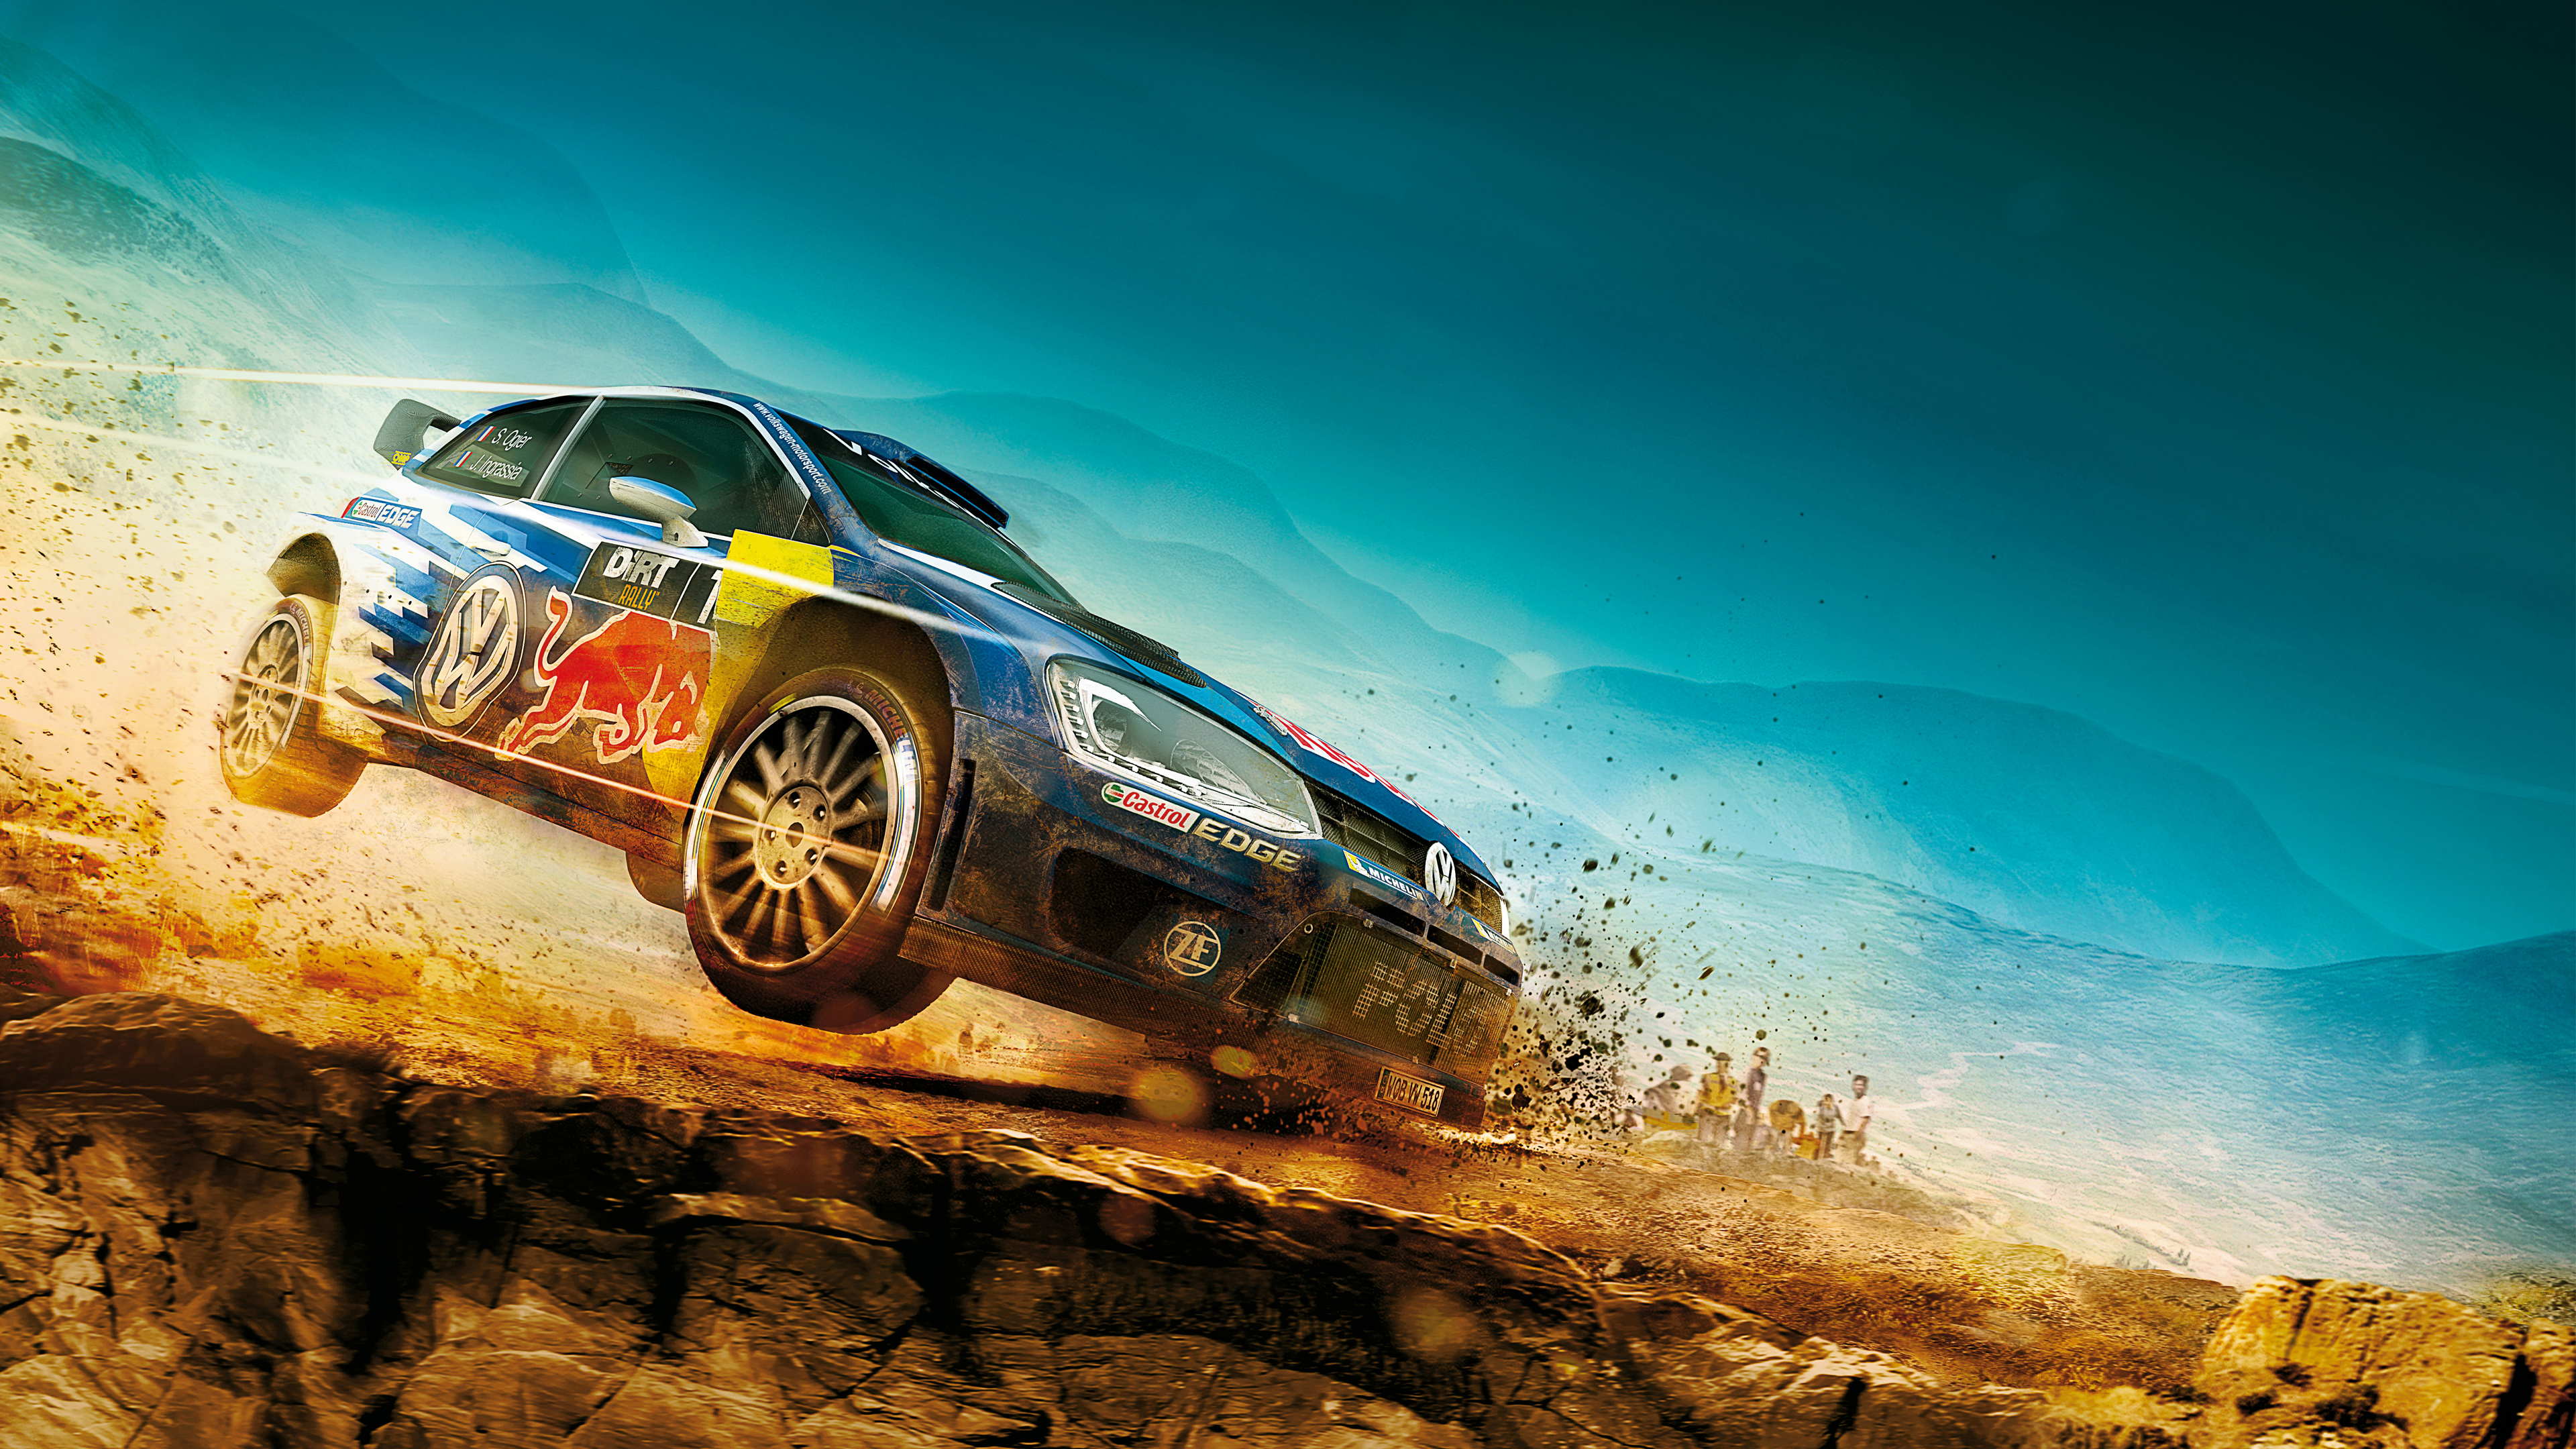 DiRT Rally Wallpapers HD Wallpapers 3840x2160